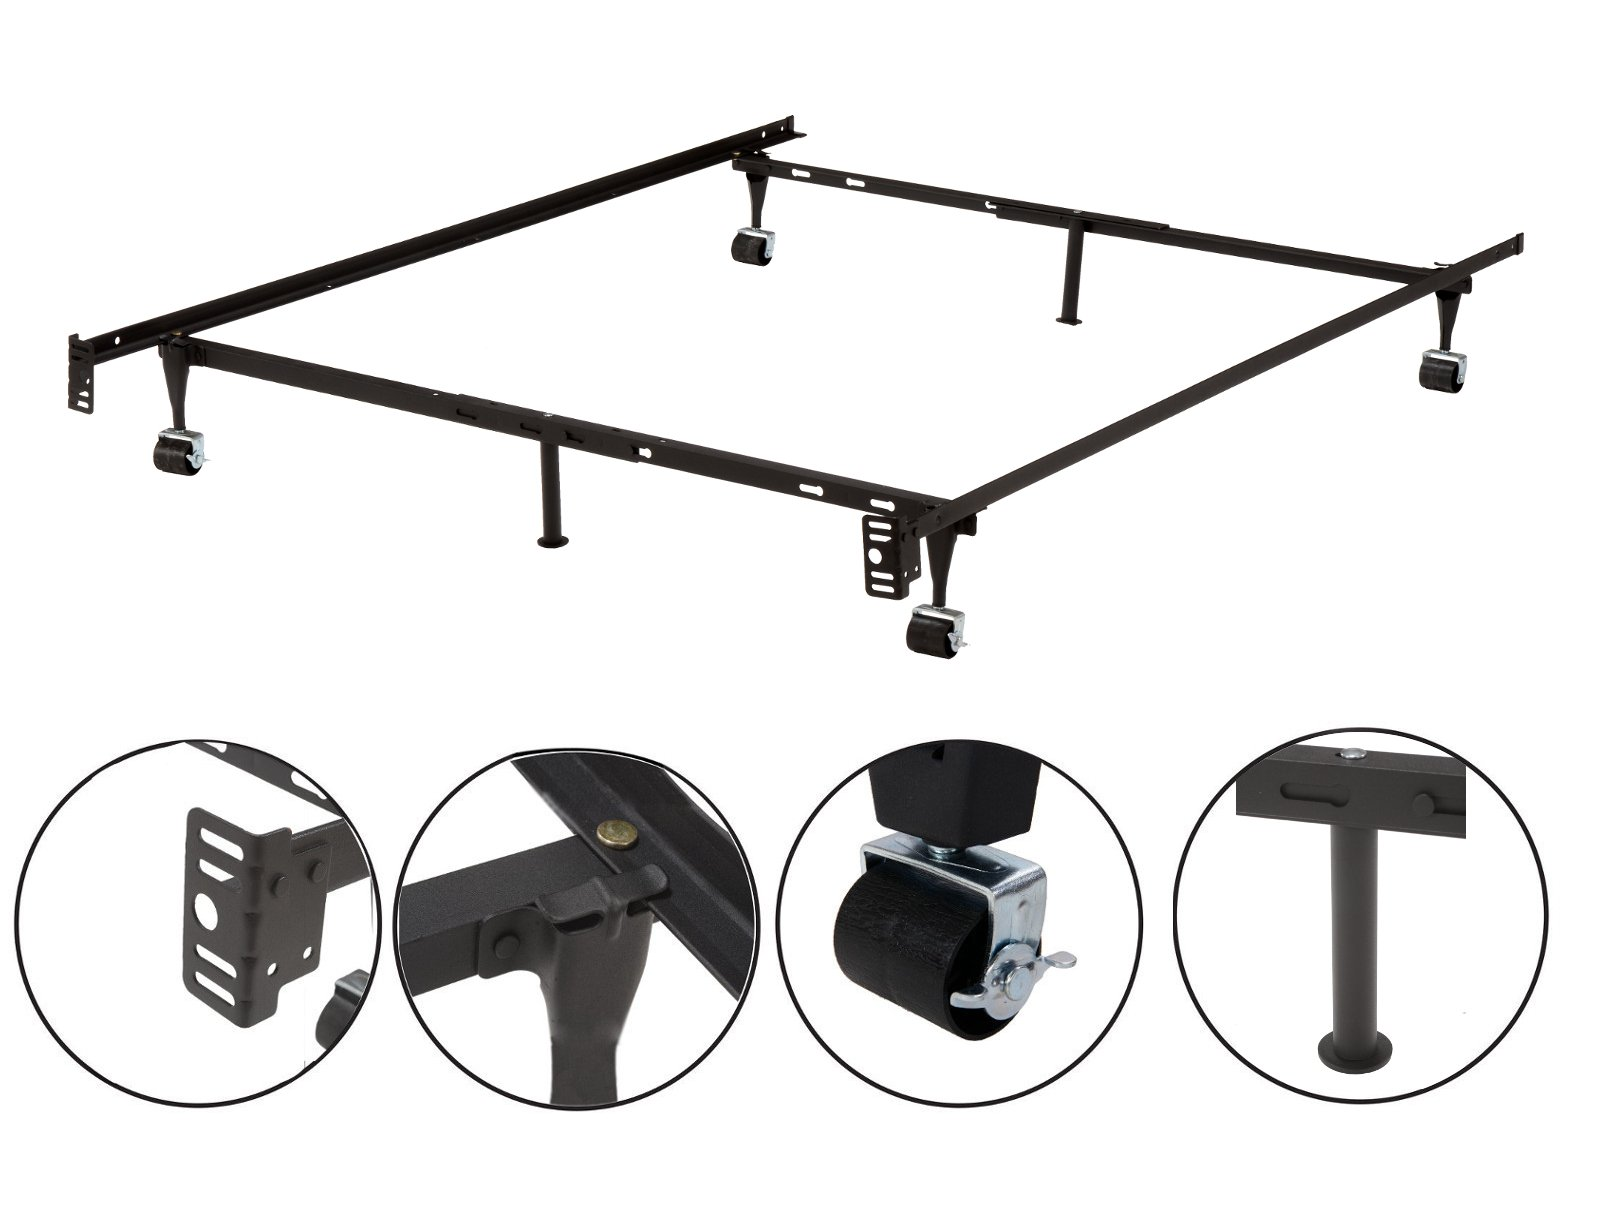 6-Leg Heavy Duty Adjustable Metal Queen, Full, Full XL, Twin, Twin XL, Bed Frame with Rug Rollers & Locking Wheels